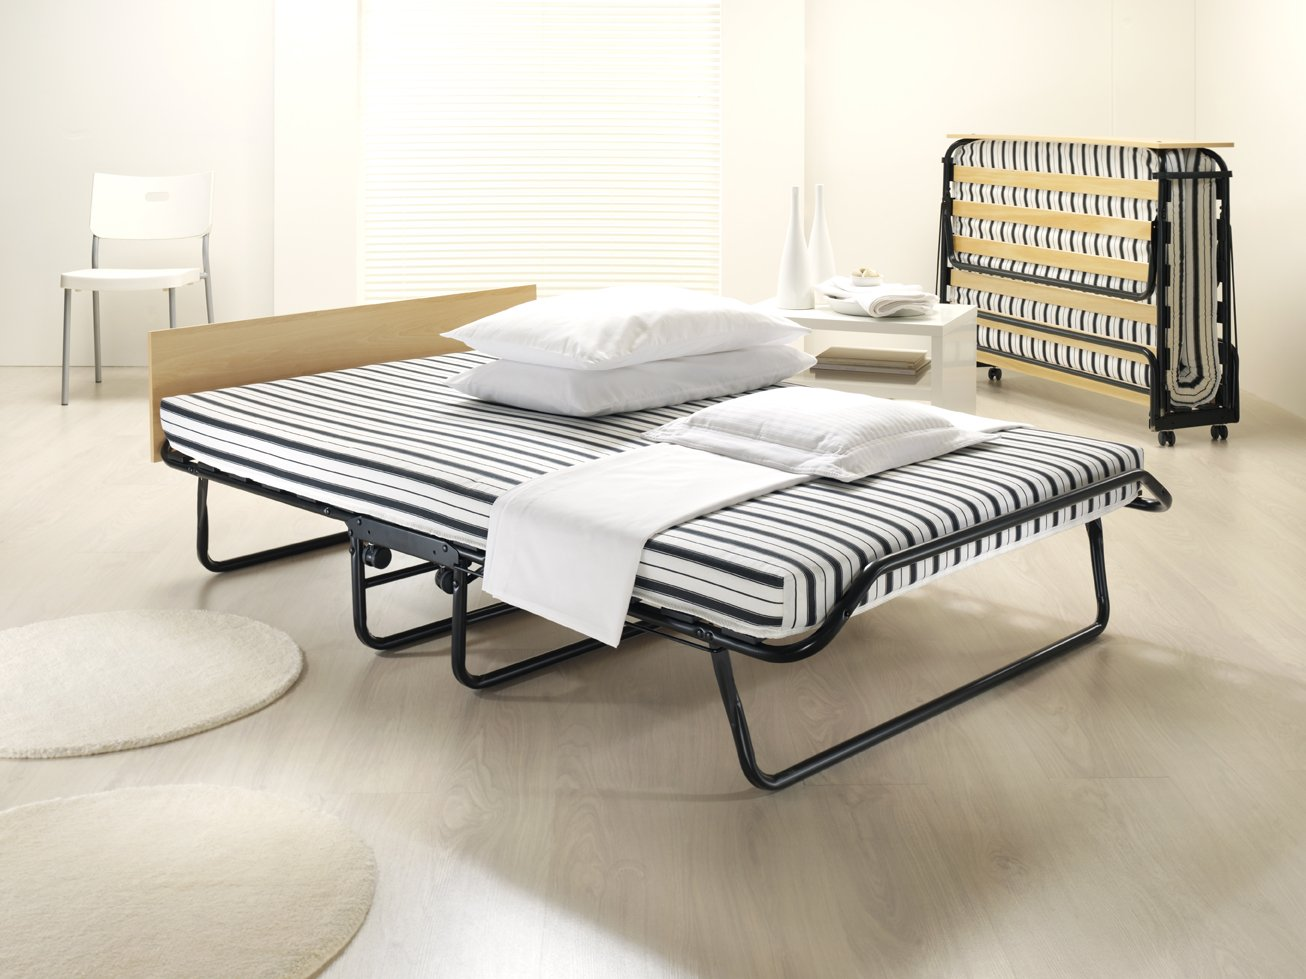 single htm matrah foam guest from memory sareer bed delivery mattress p day with white gloss small folding next